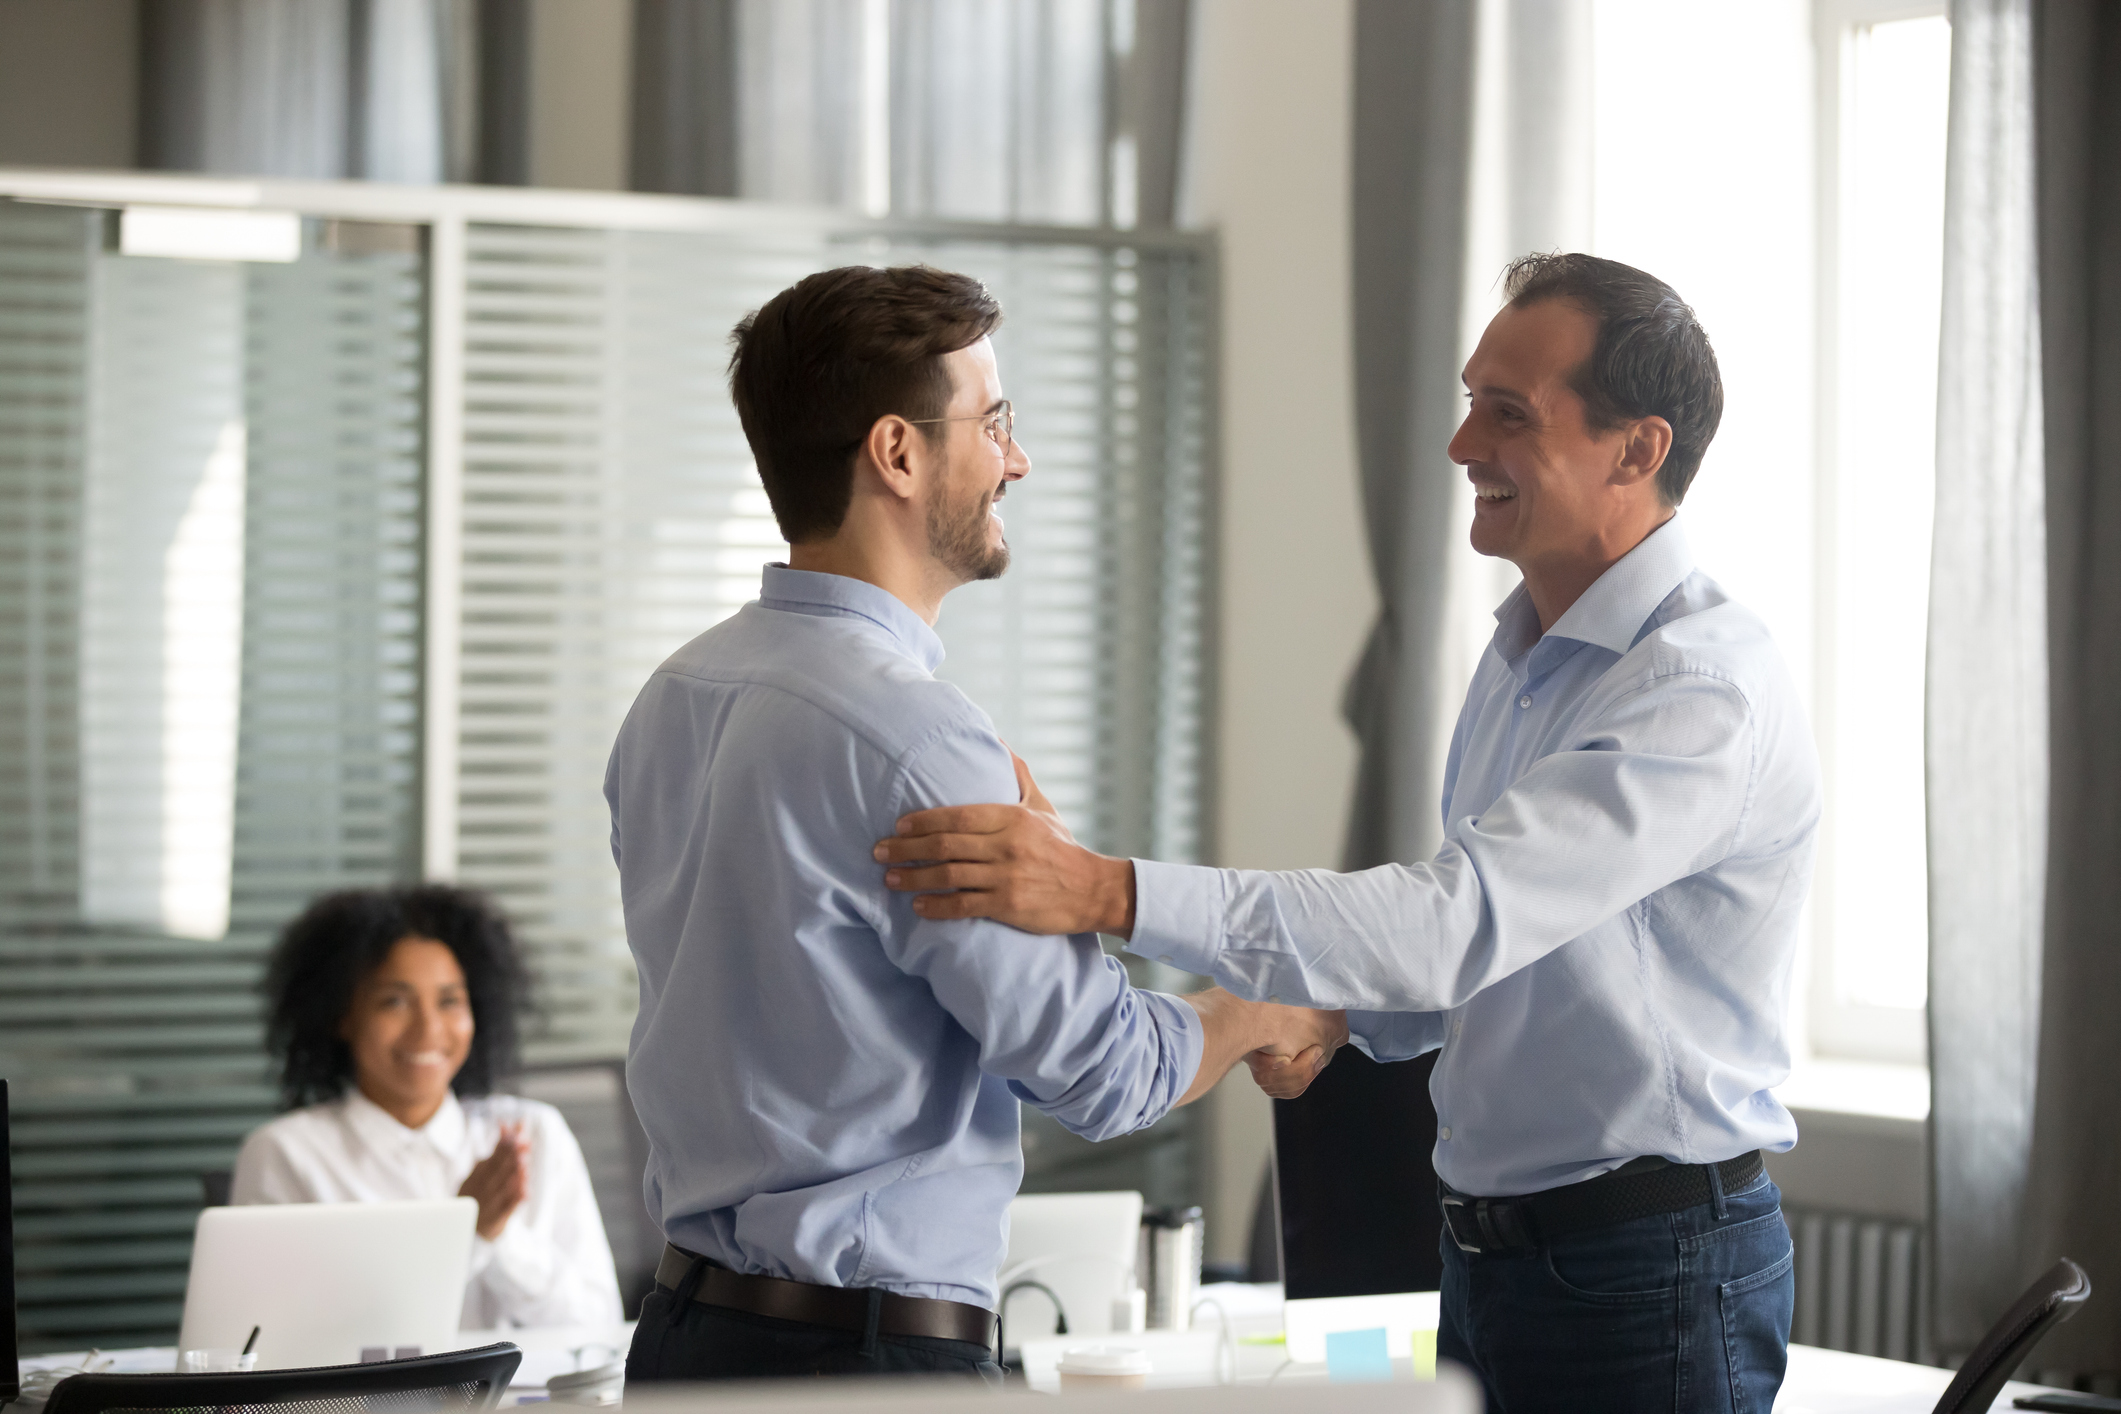 How insurance brokers can help with claim management during COVID-19